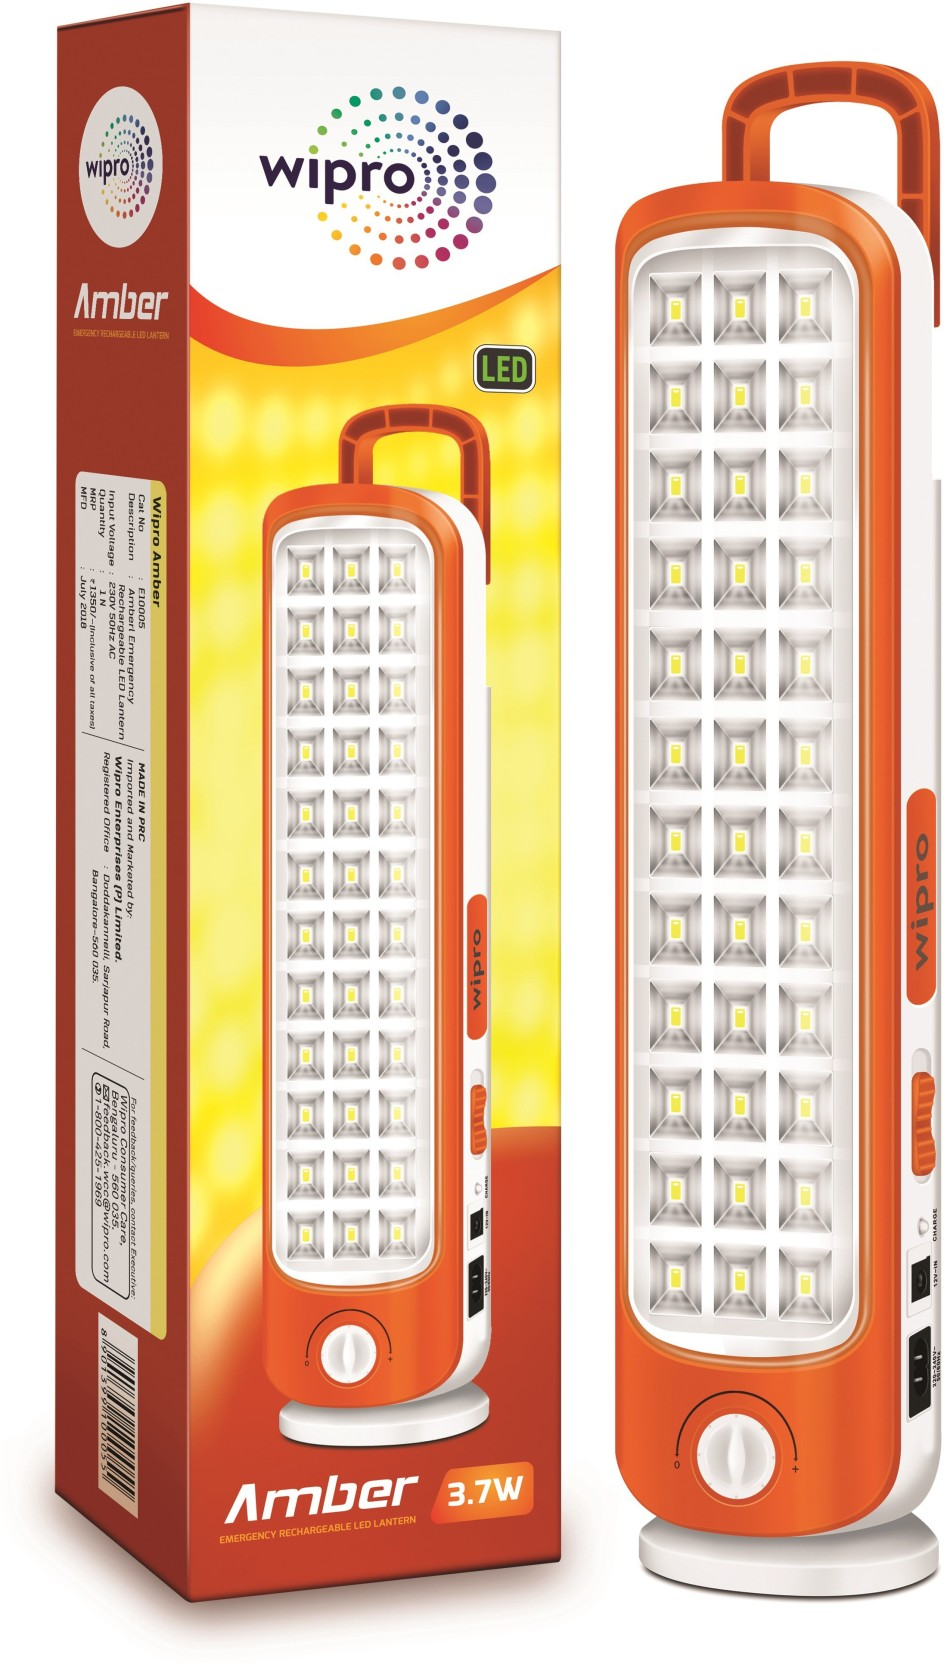 Wipro Amber Emergency Light Price In India Buy Lamp Battery Protector Add To Cart